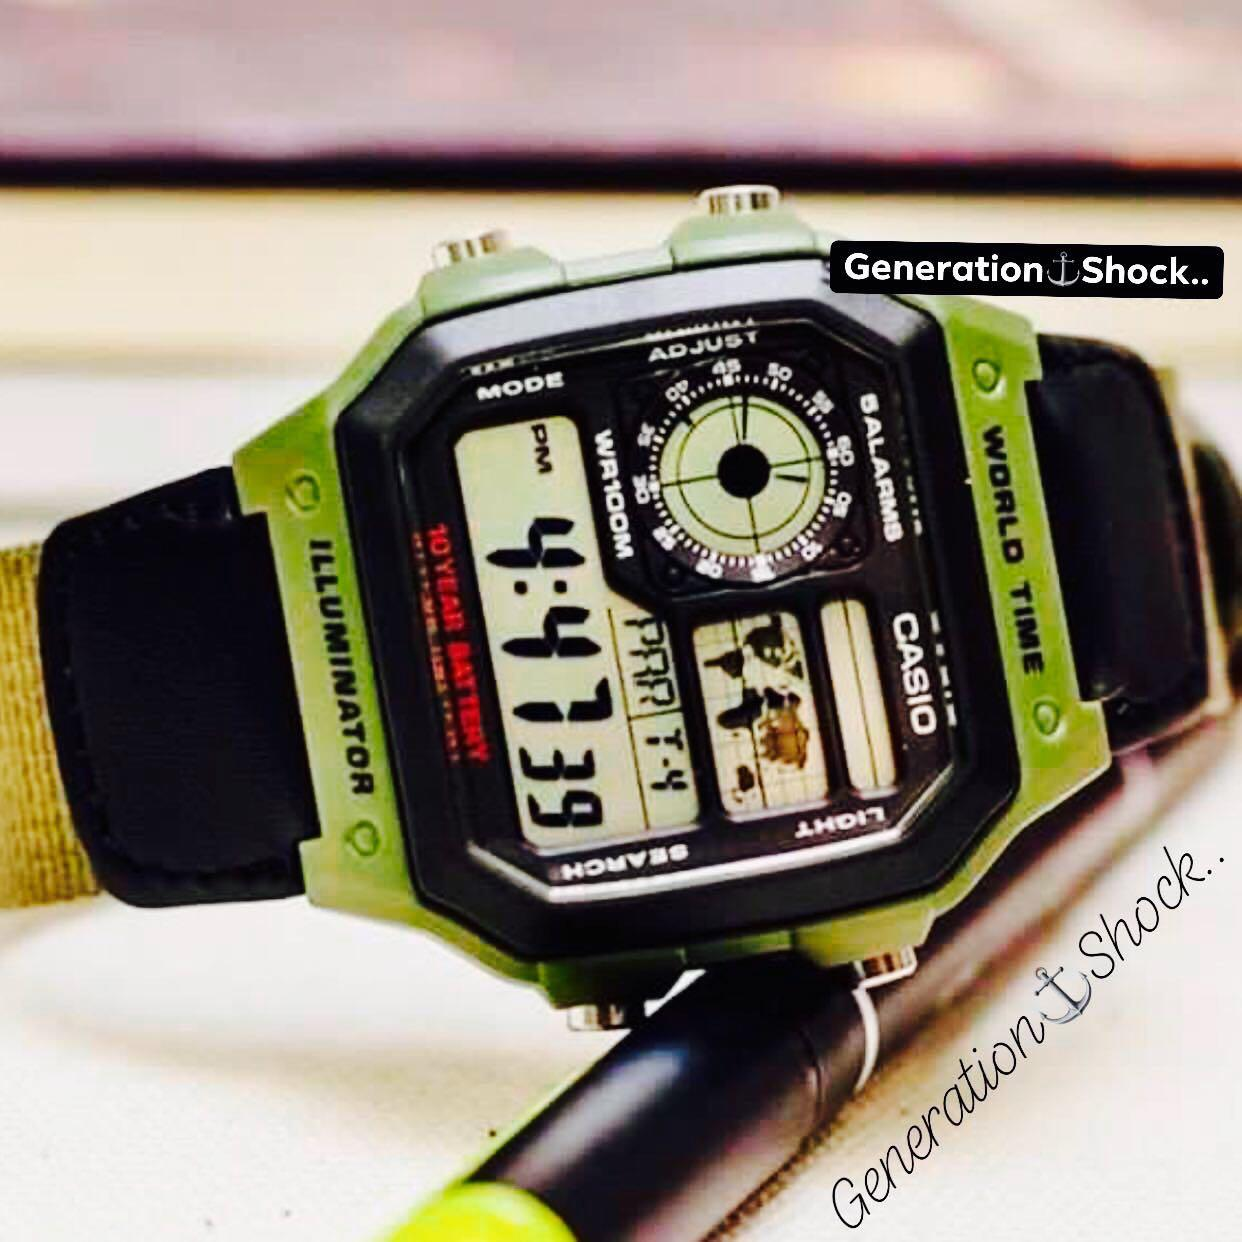 NEW🌟TOUGH CASIO UNISEX SPORTS WATCH : 100% ORIGINAL AUTHENTIC : By BABY-G-SHOCK ( BABYG GSHOCK ) COMPANY : AE-1200WHB-3BVDF / DW-5600BBN-1DR Series (MILITARY GREEN RAINFOREST)